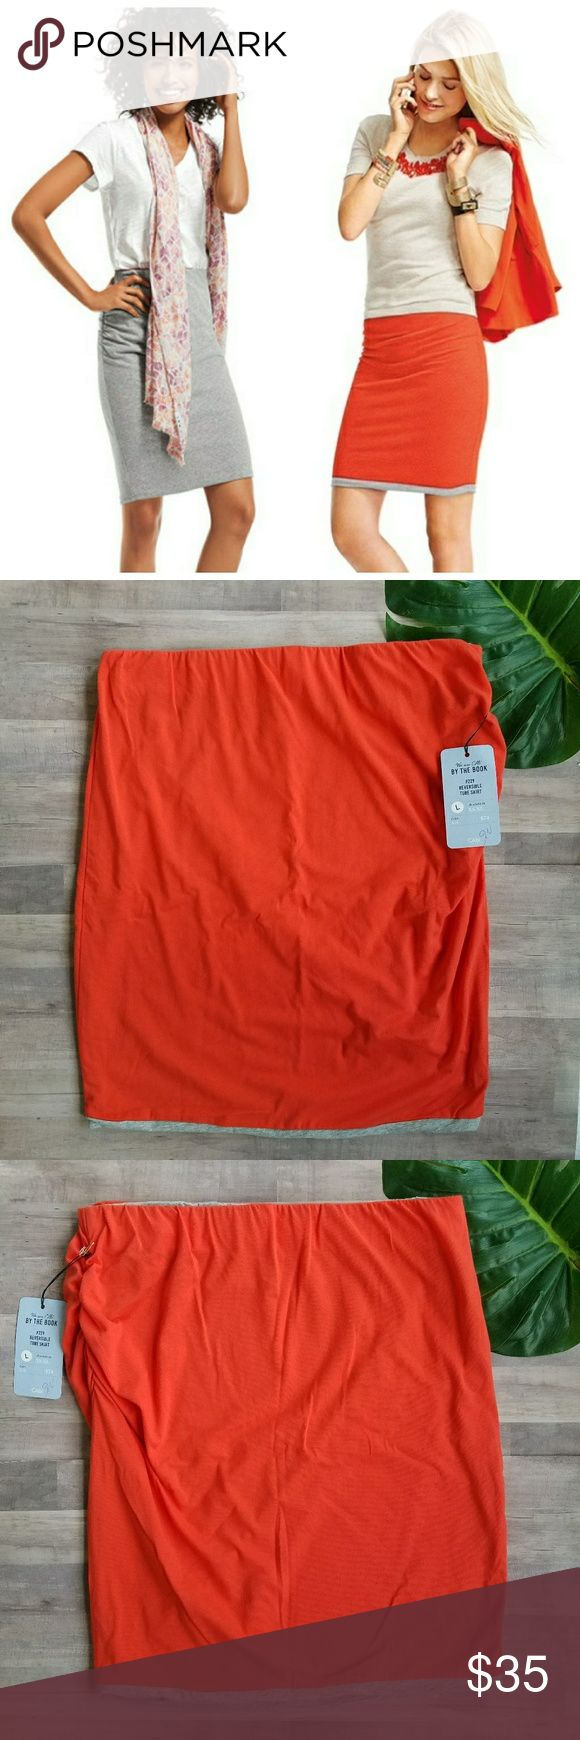 """CAbi #229 Reversible Tube Skirt Pencil CAbi.  Women's Large.  #229 Reversible Tube Skirt.  Pencil style skirt. An easy tube skirt perfect for lazy weekend days or summertime travel. One side is heathered grey, the other is our bright grenadine orange. Side ruching for great scrunch appeal. Elastic waist. 95% Cotton. 5% Spandex. Very stretchy. New with tags. Can also be worn as a strapless top. Waist- 17"""" Length- 23"""" CAbi Skirts"""